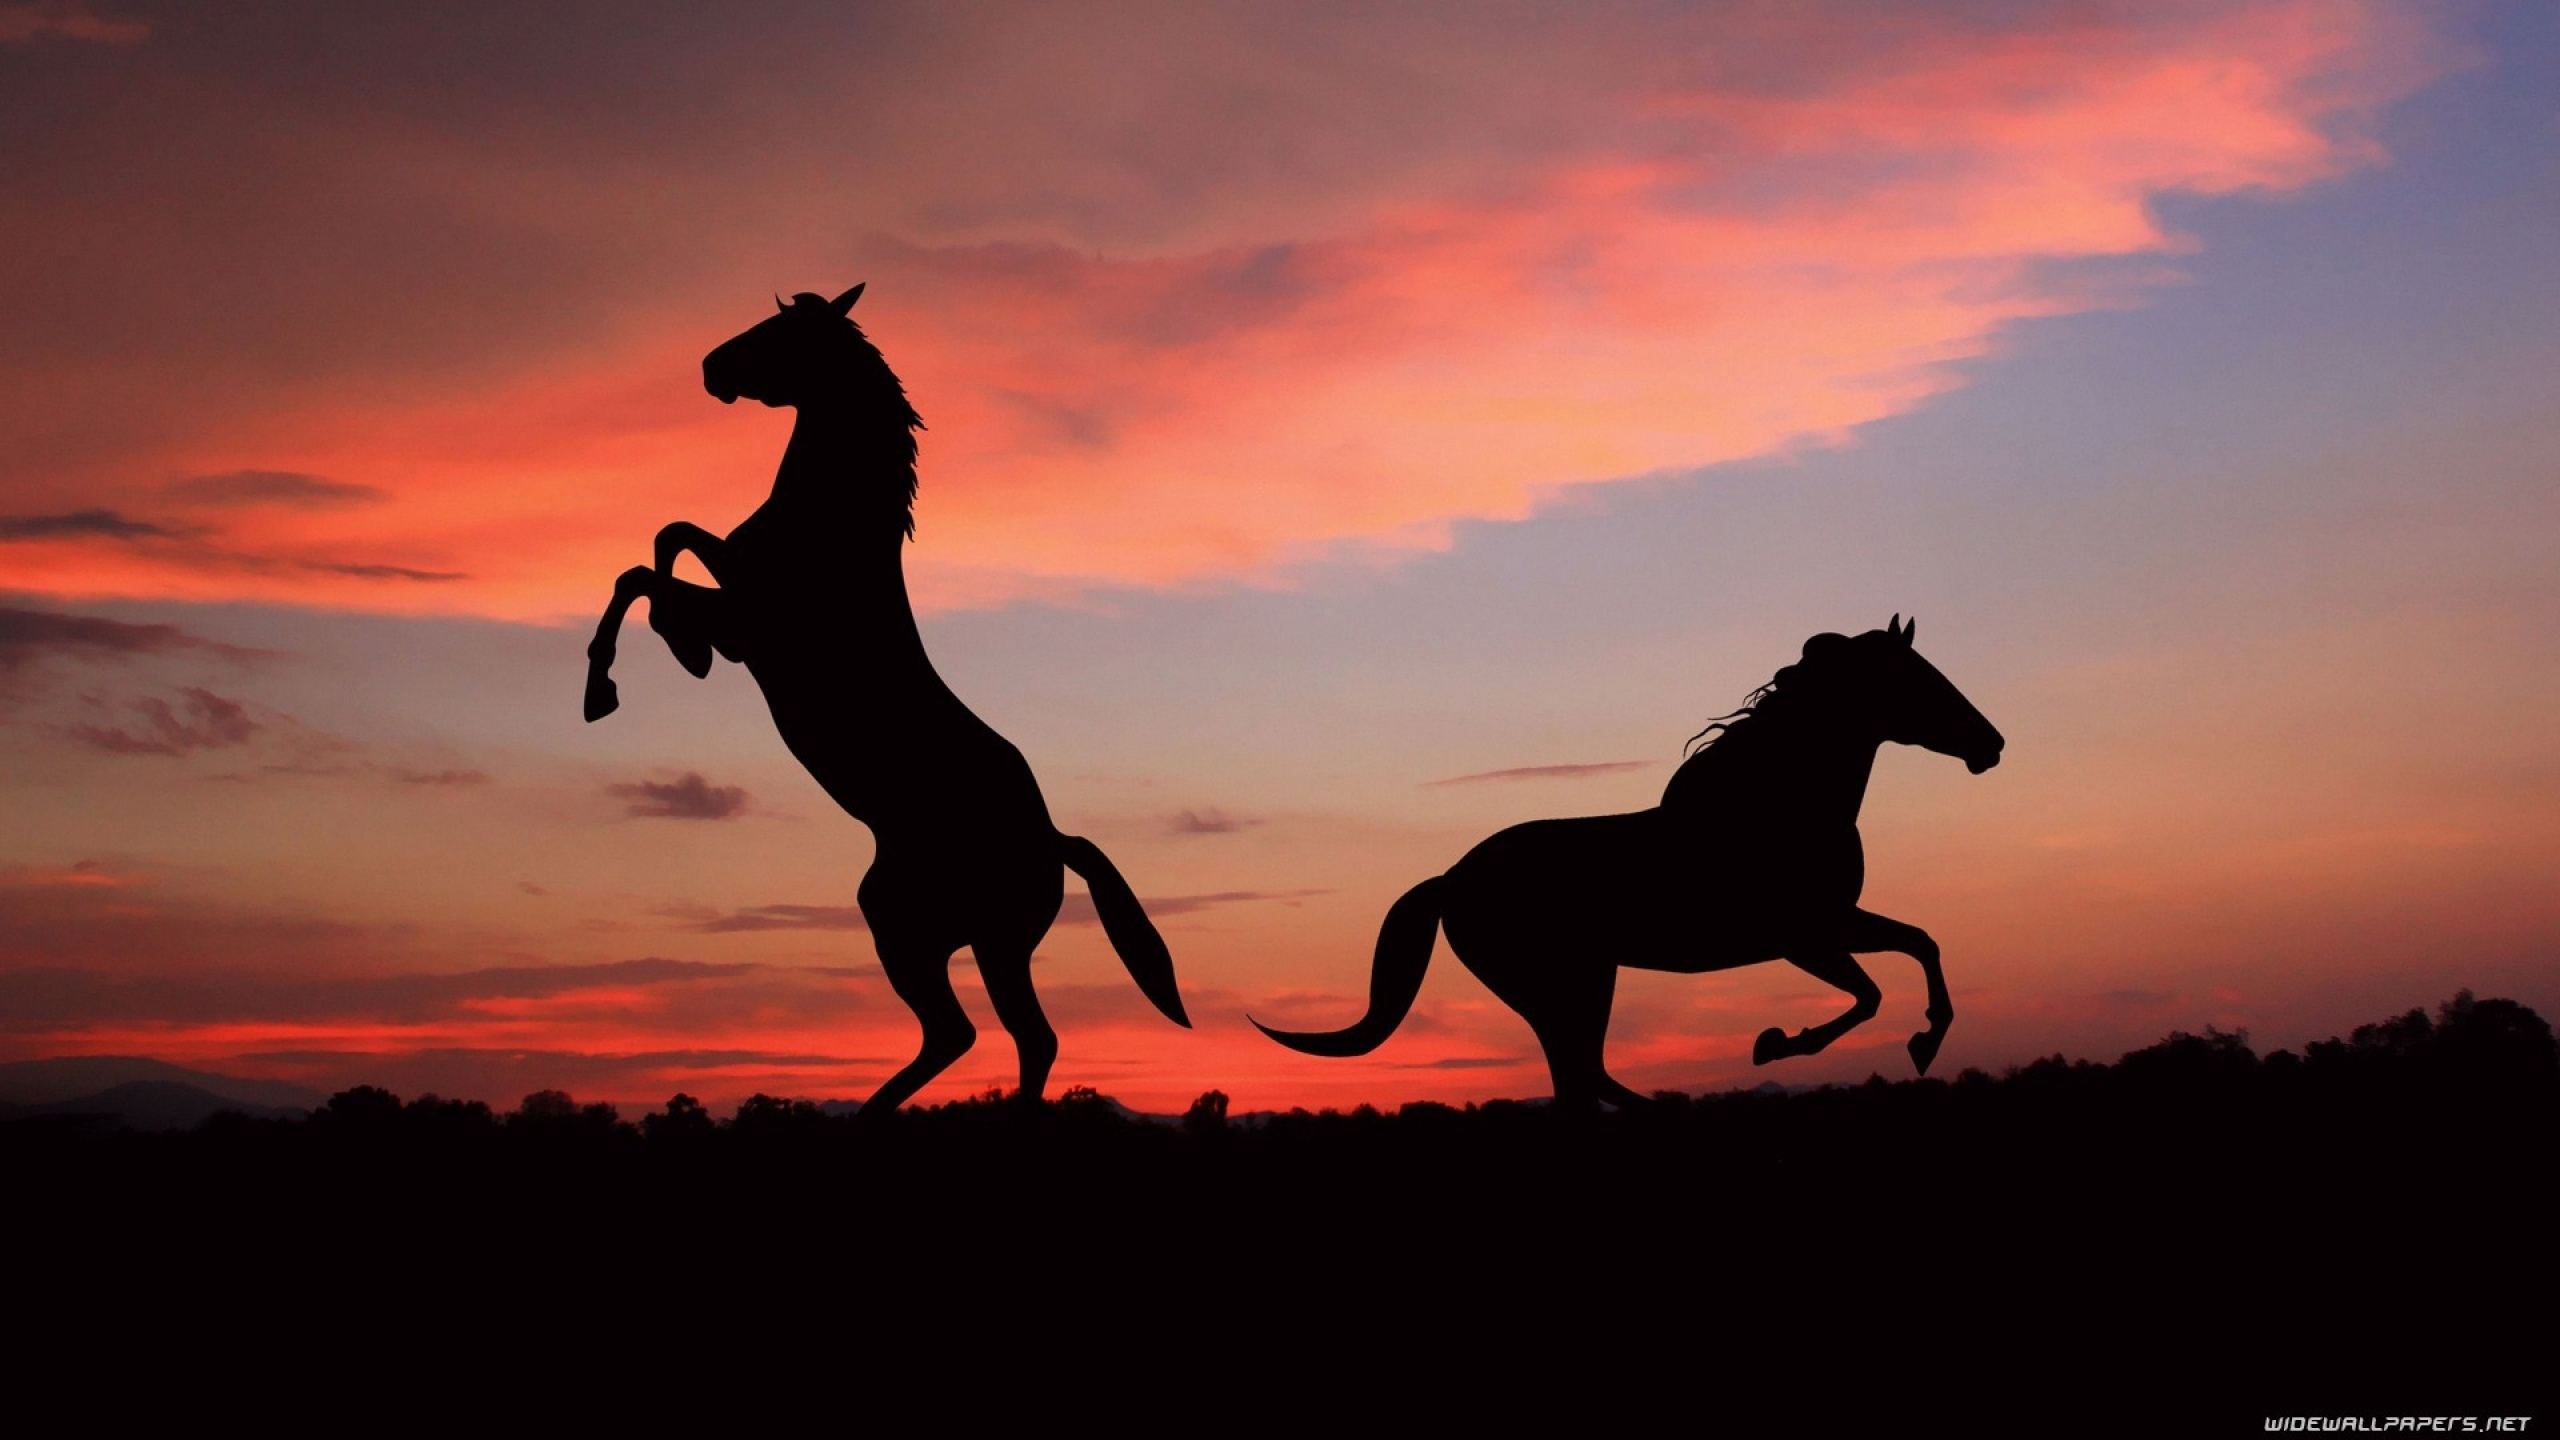 Beautiful Wallpaper Horse Mustang - tumblr_static_sunset_clouds_nature_animals_h_2560x1440_wallpaperhi  Collection_851283.jpg